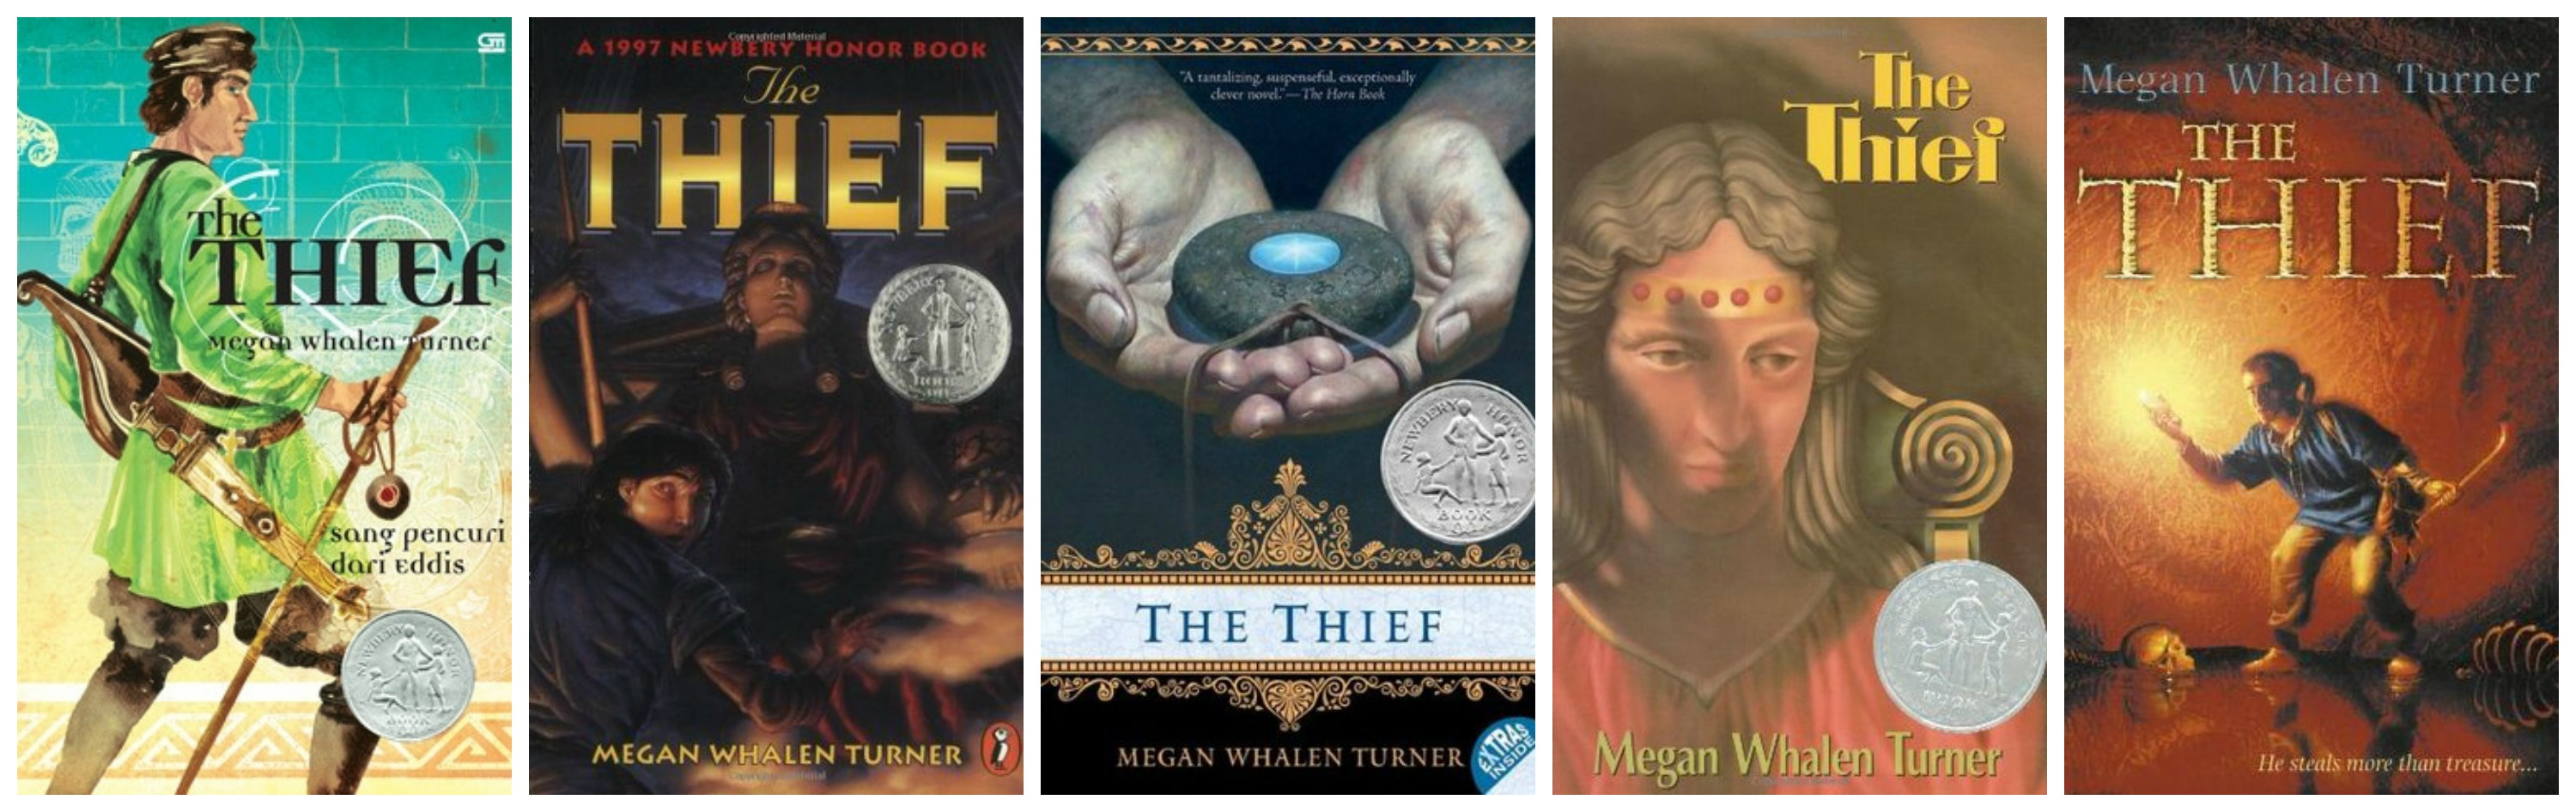 Megan Whalen Turner Archives - The Deliberate Reader